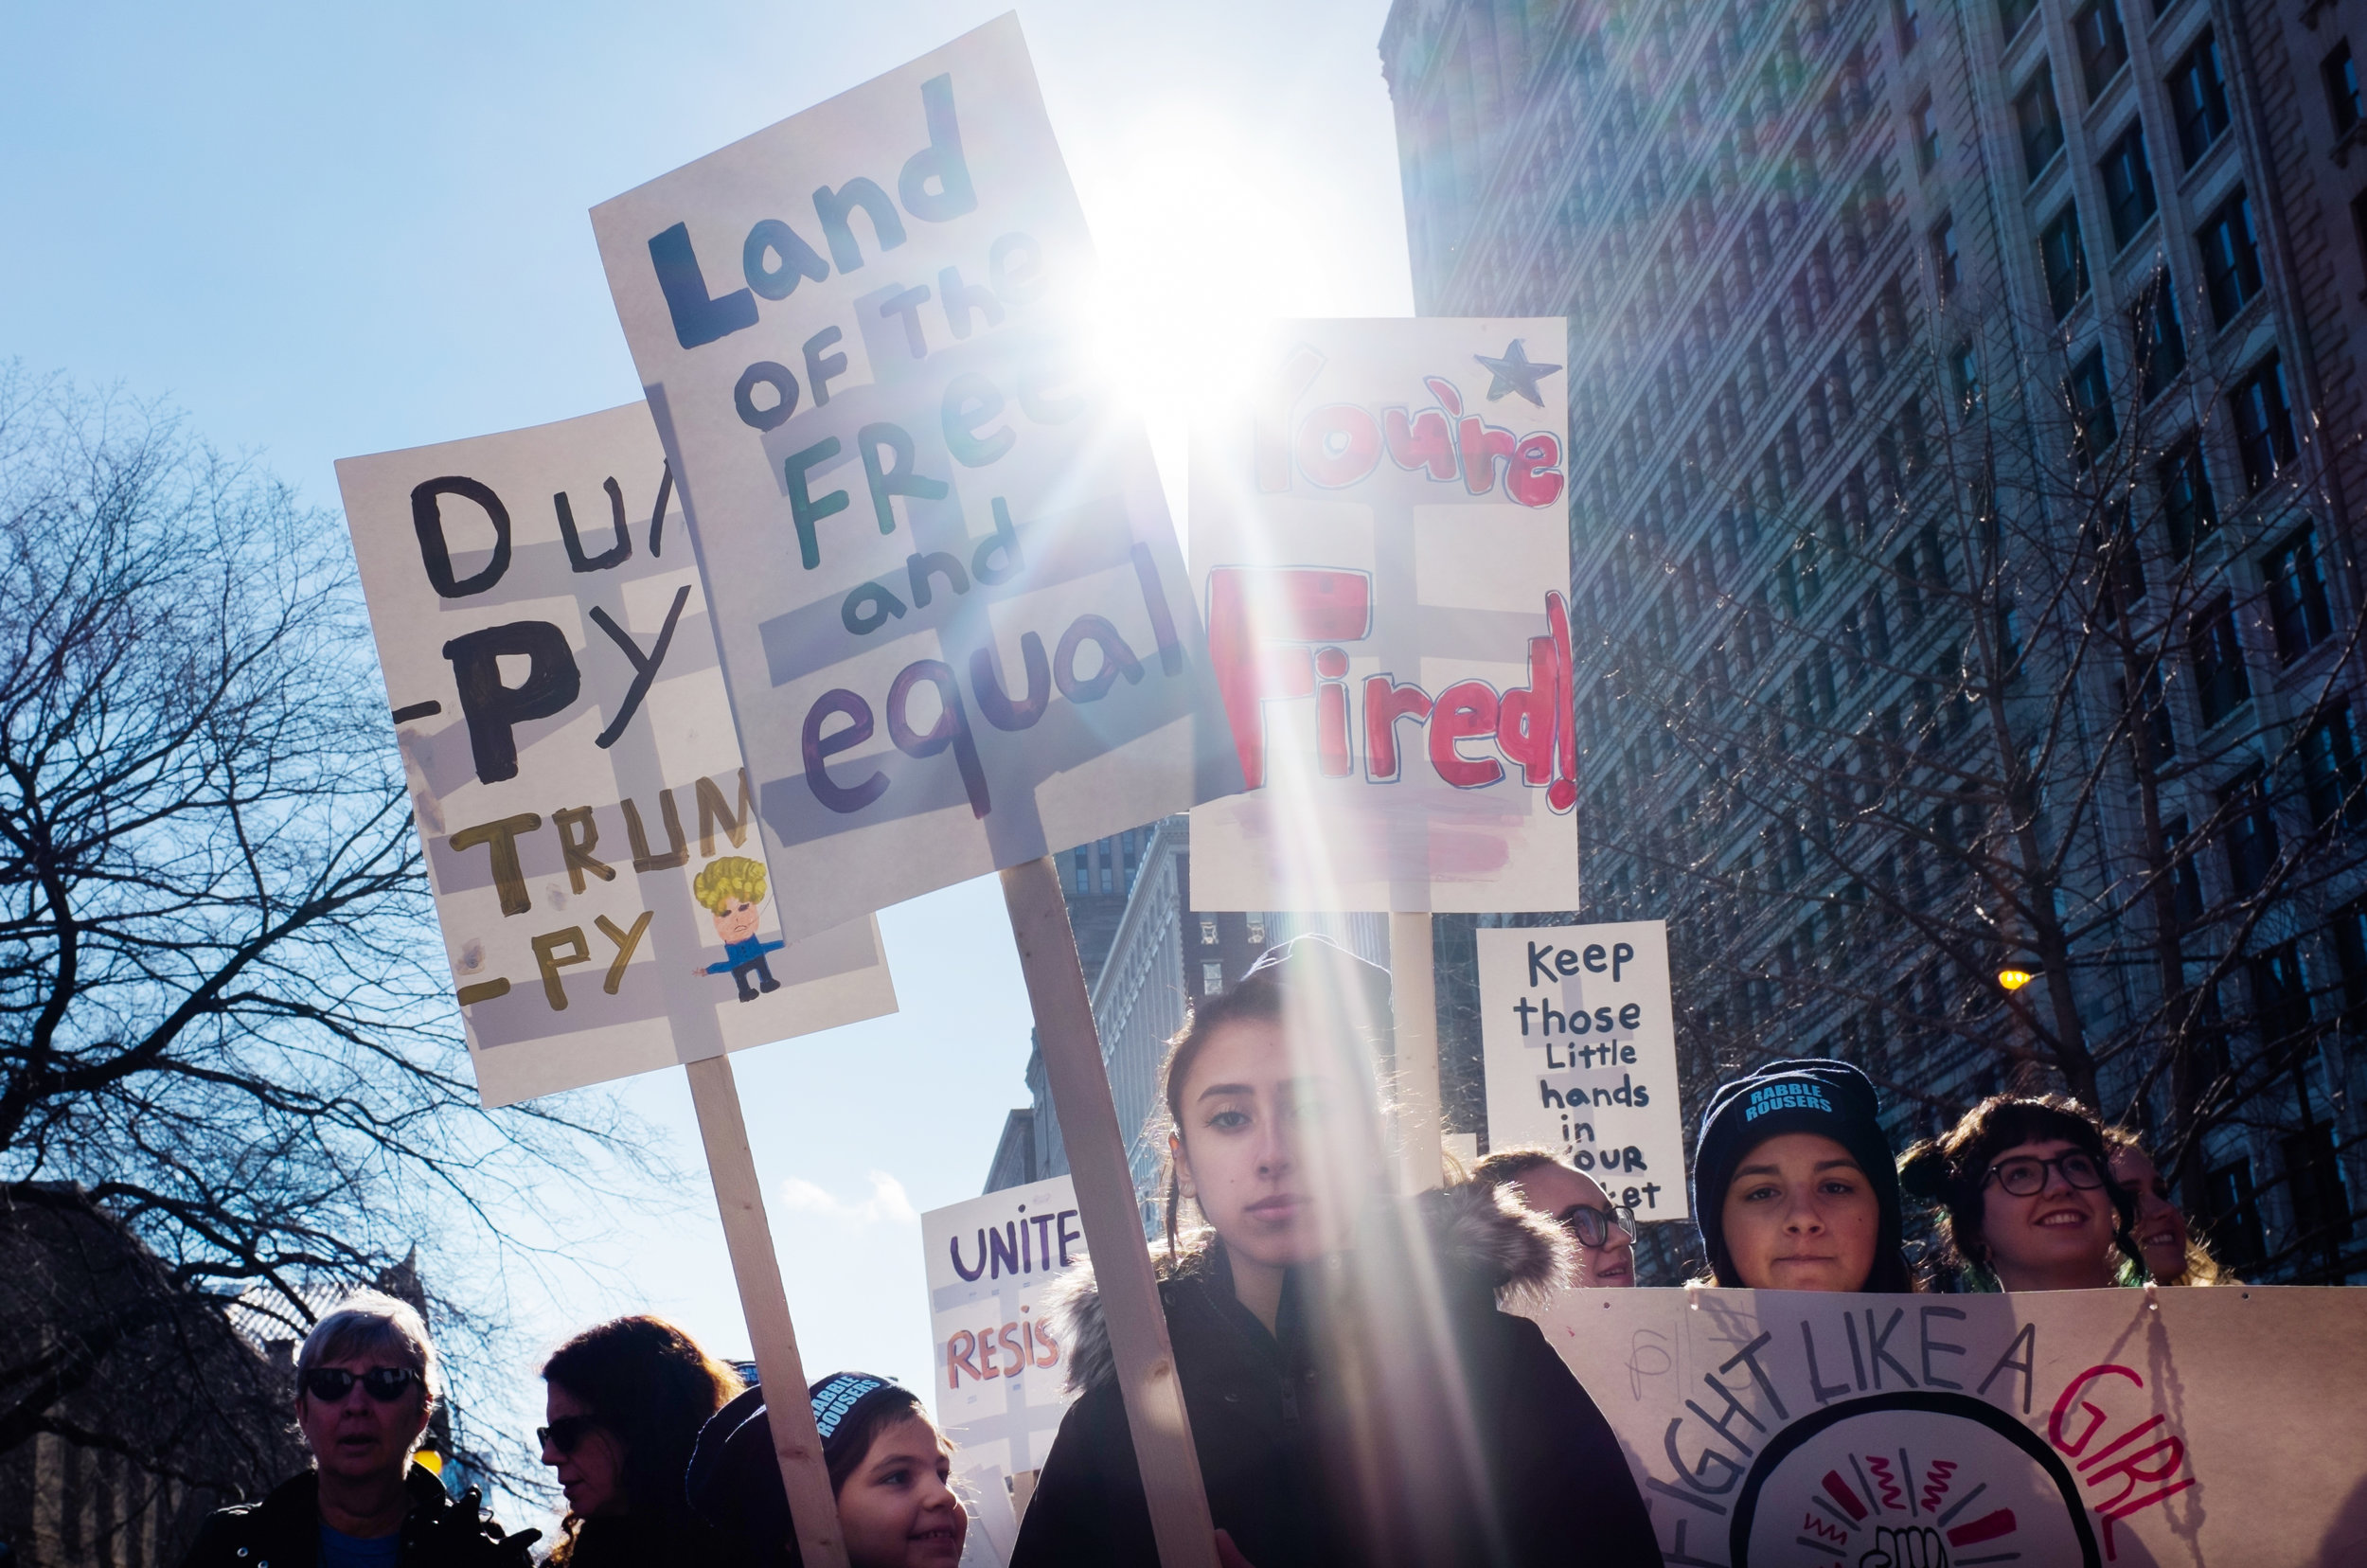 An estimated 250,000 protesters marched at the Chicago Women's March, Jan. 21. (Photo/Sebastián Hidalgo)